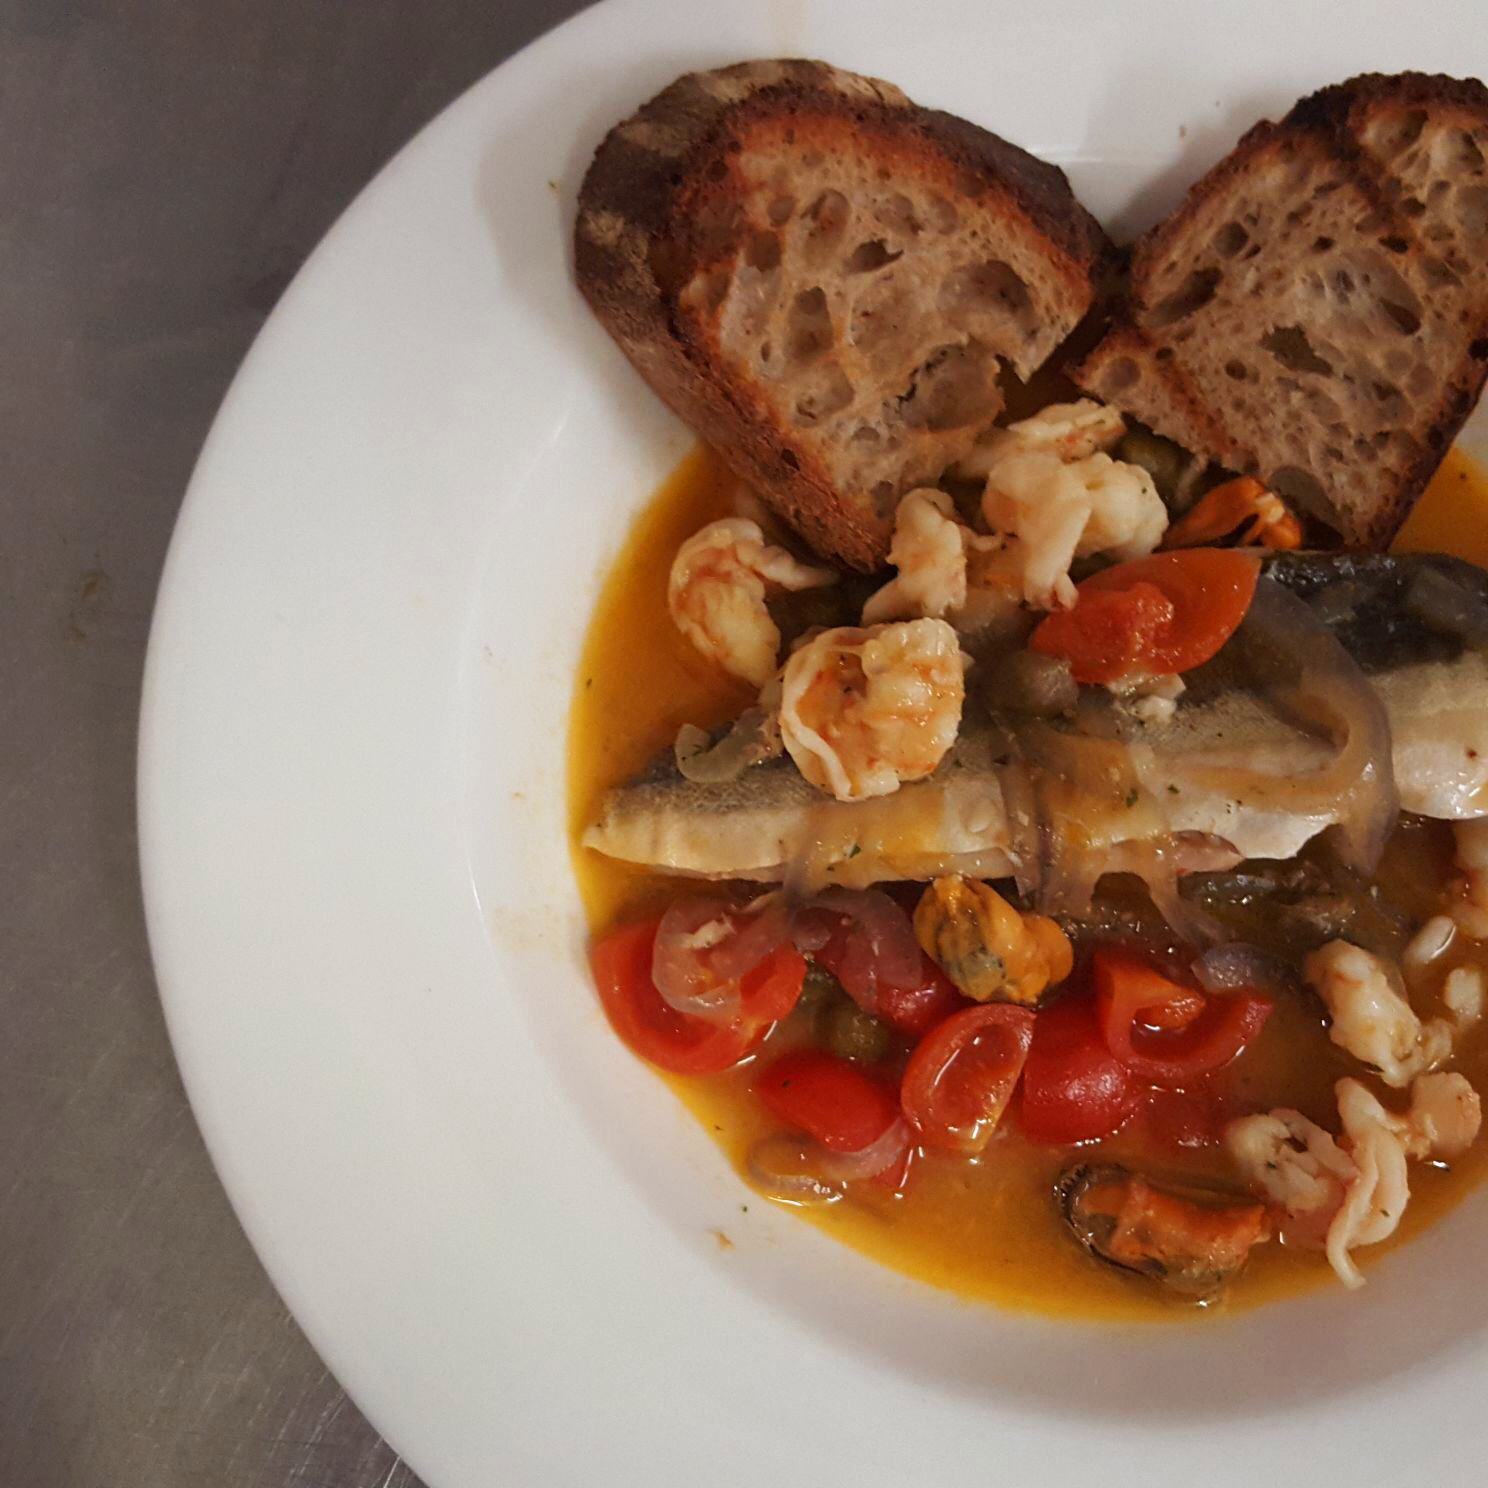 seafood stew. clams, mussels, prawns, gurnard, bisque and sourdough bread